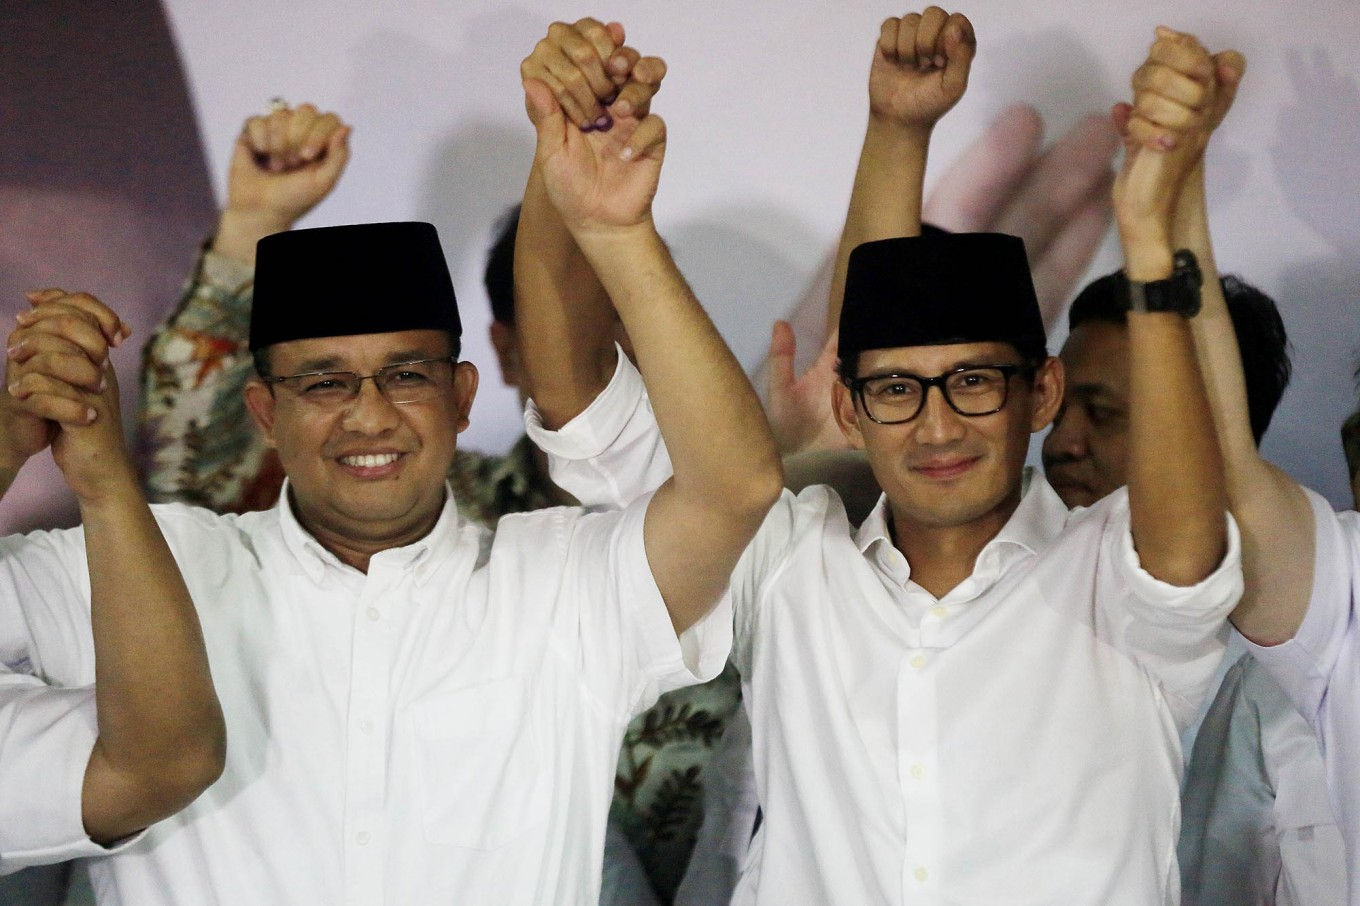 Anies expresses gratitude to Islamic figures in victory speech